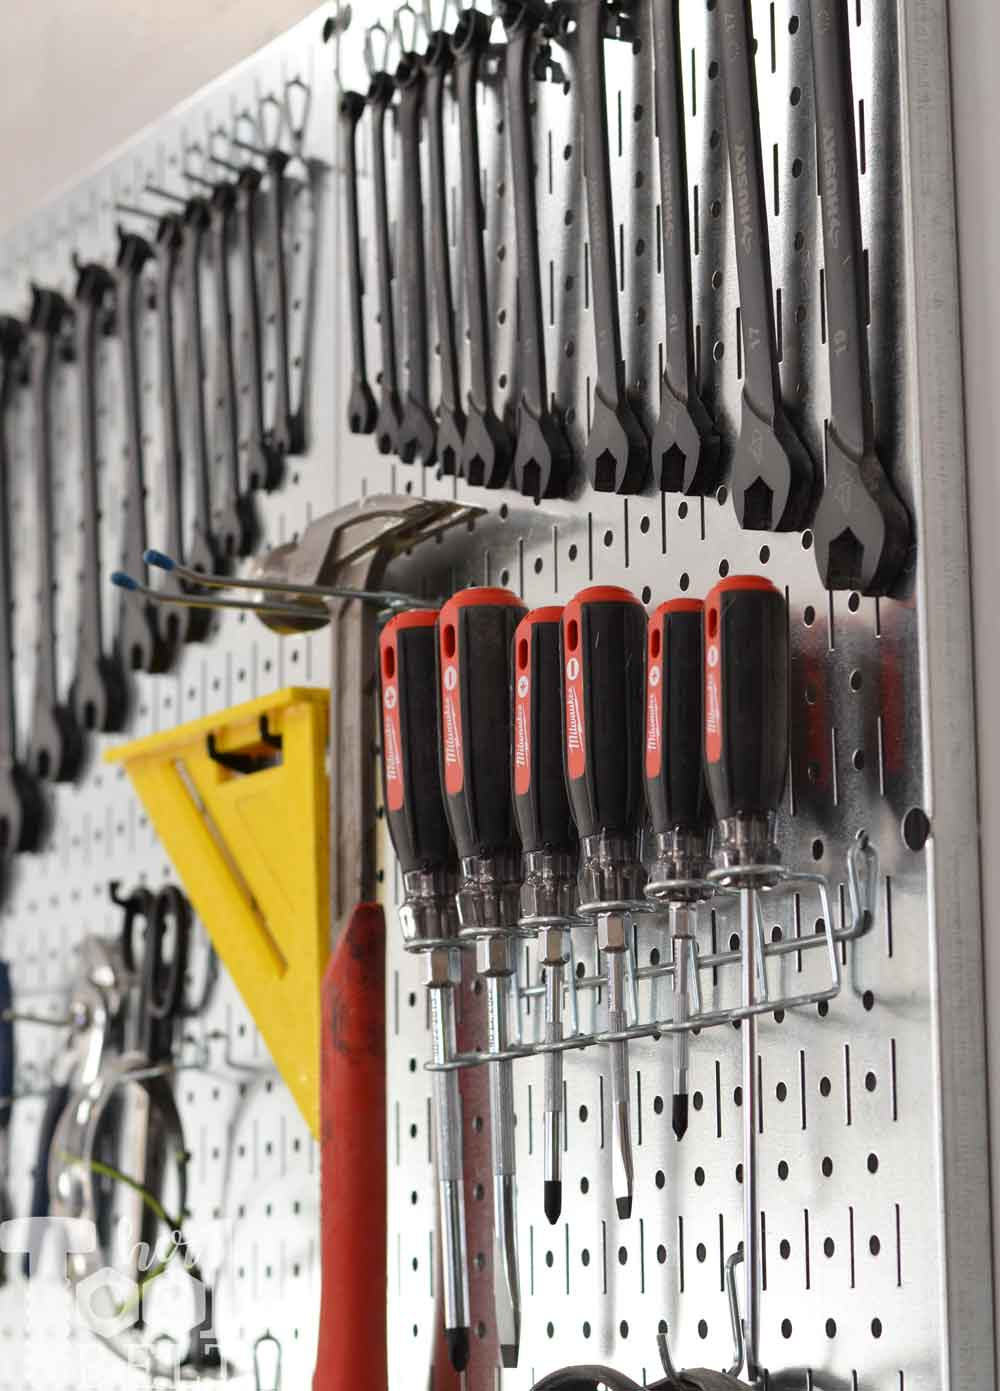 Organize Screwdrivers On Pegboard Her Tool Belt